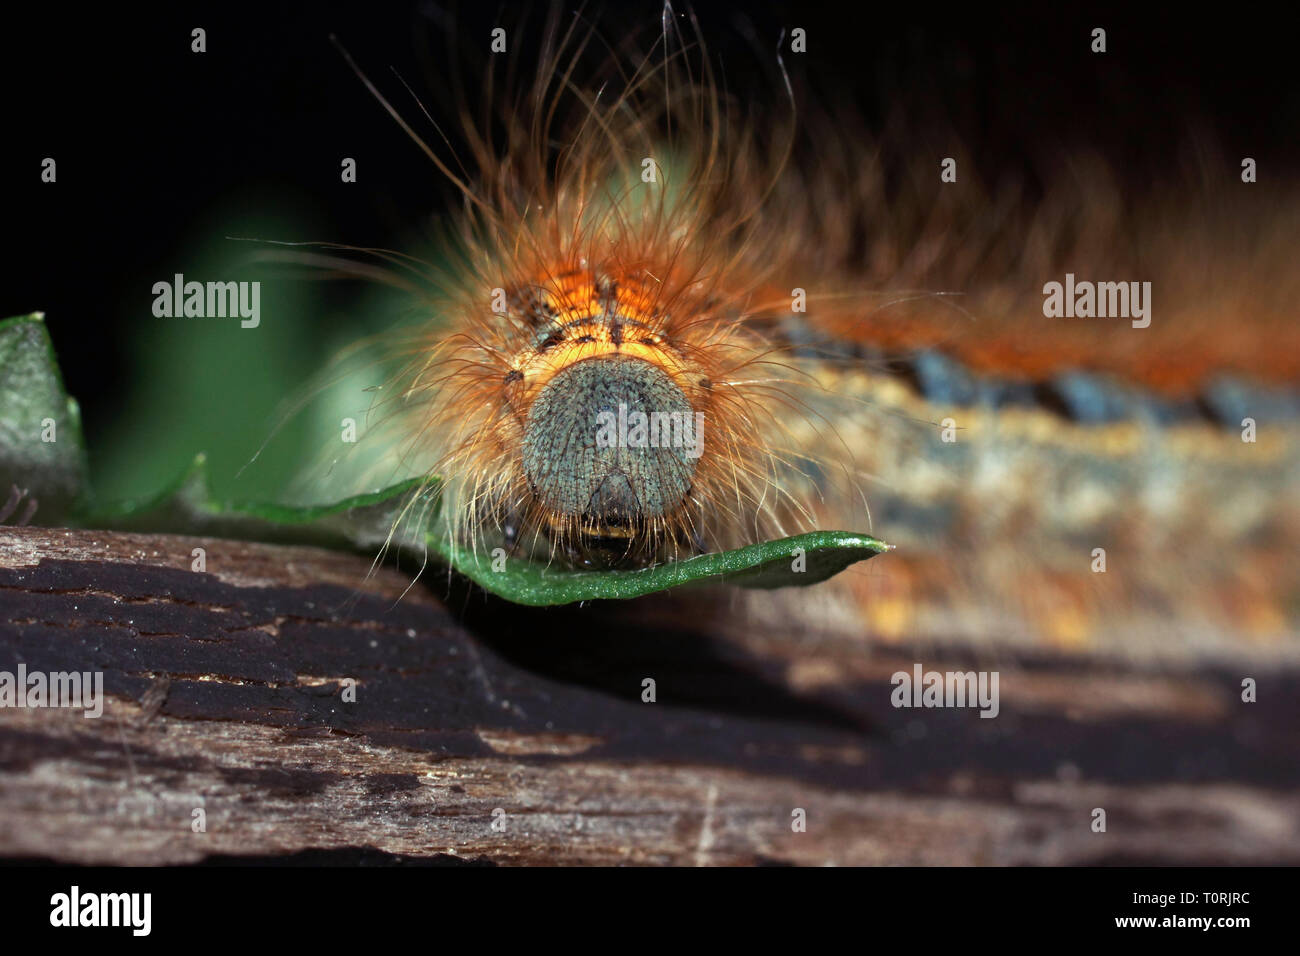 Caterpillar of a Malacosoma castrensis (ground lackey) close up. Large volotasy caterpillar sits on a sheet. - Stock Image